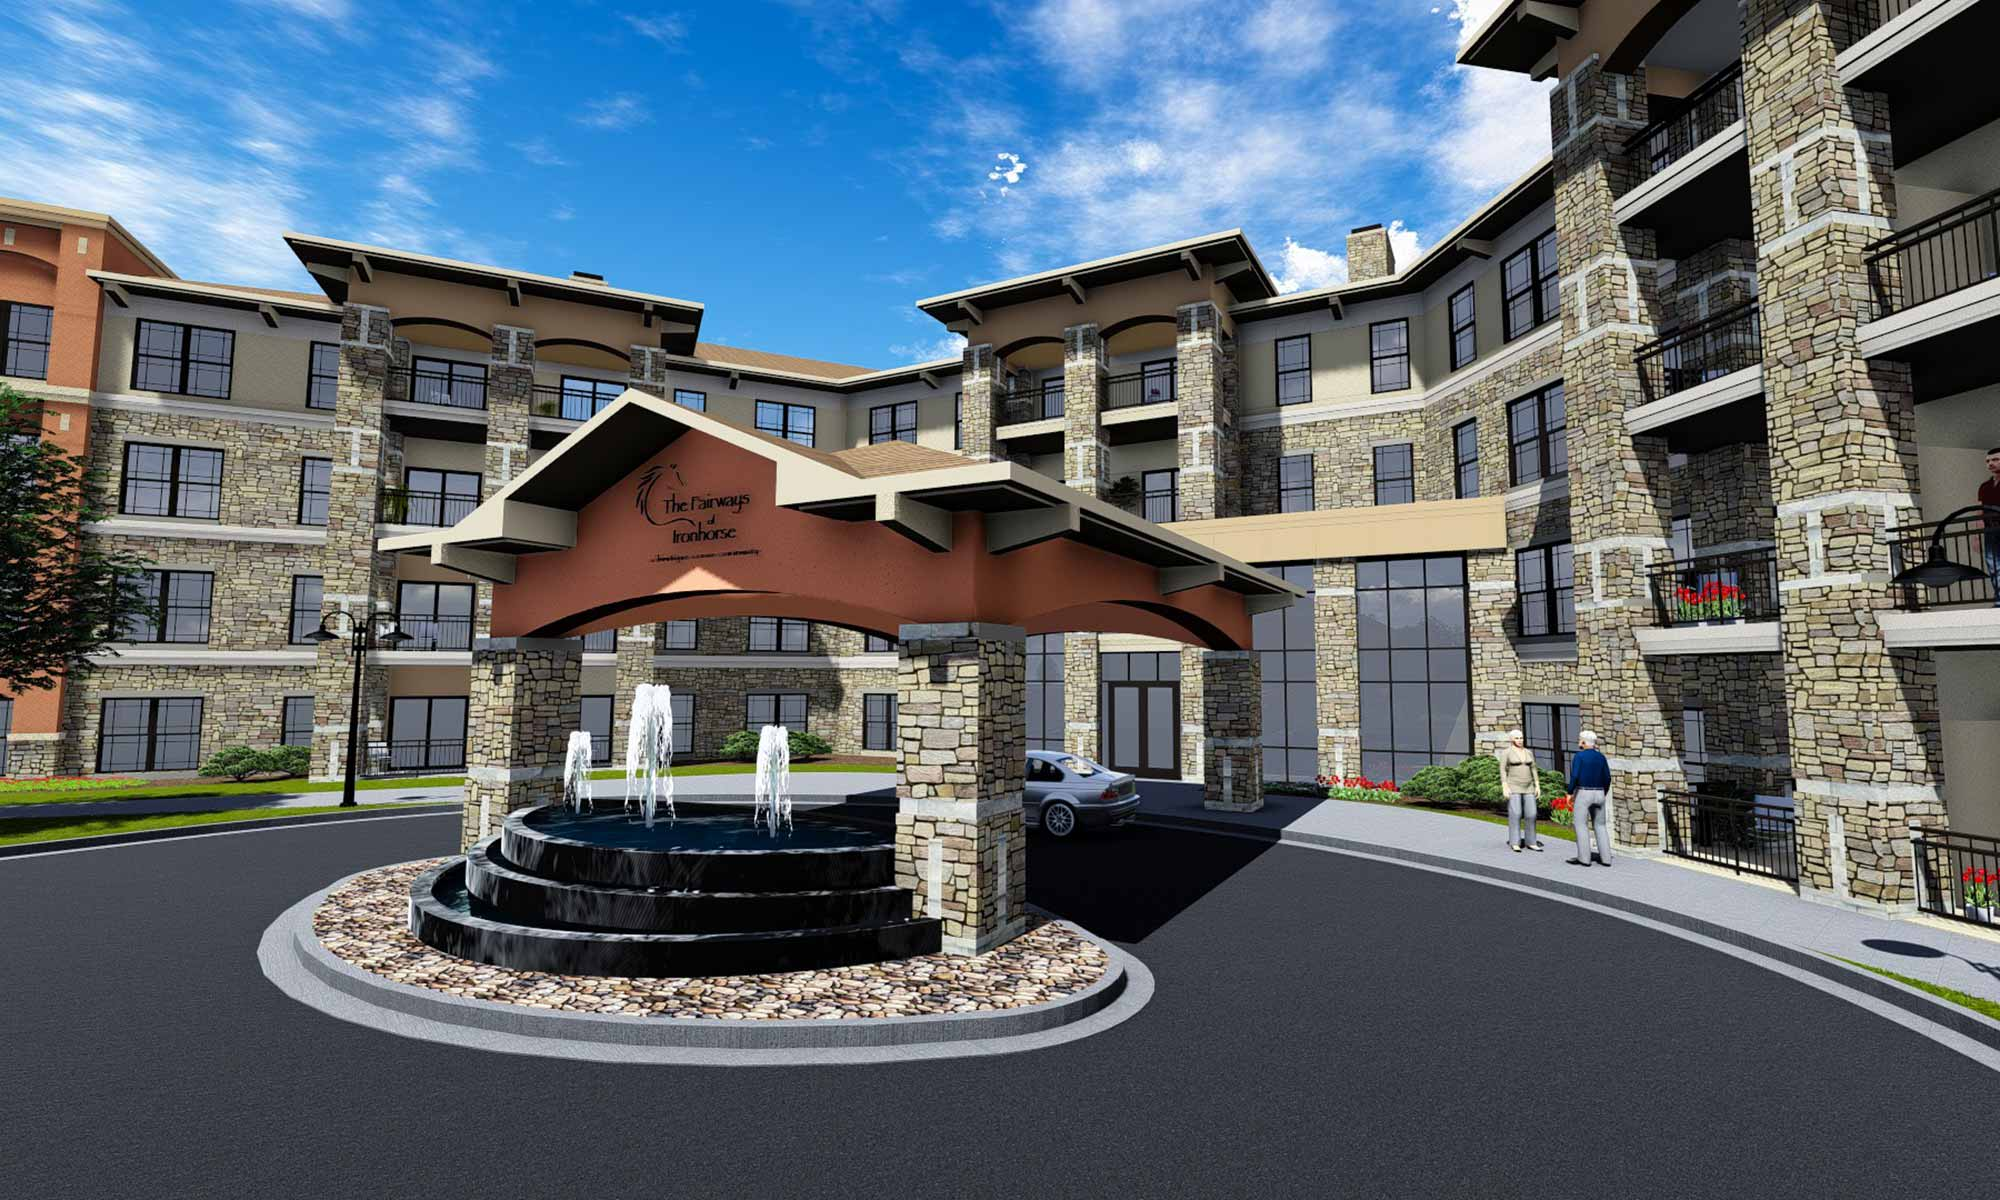 Exterior view of the lavish entryway with fountain at The Fairways of Ironhorse in Leawood